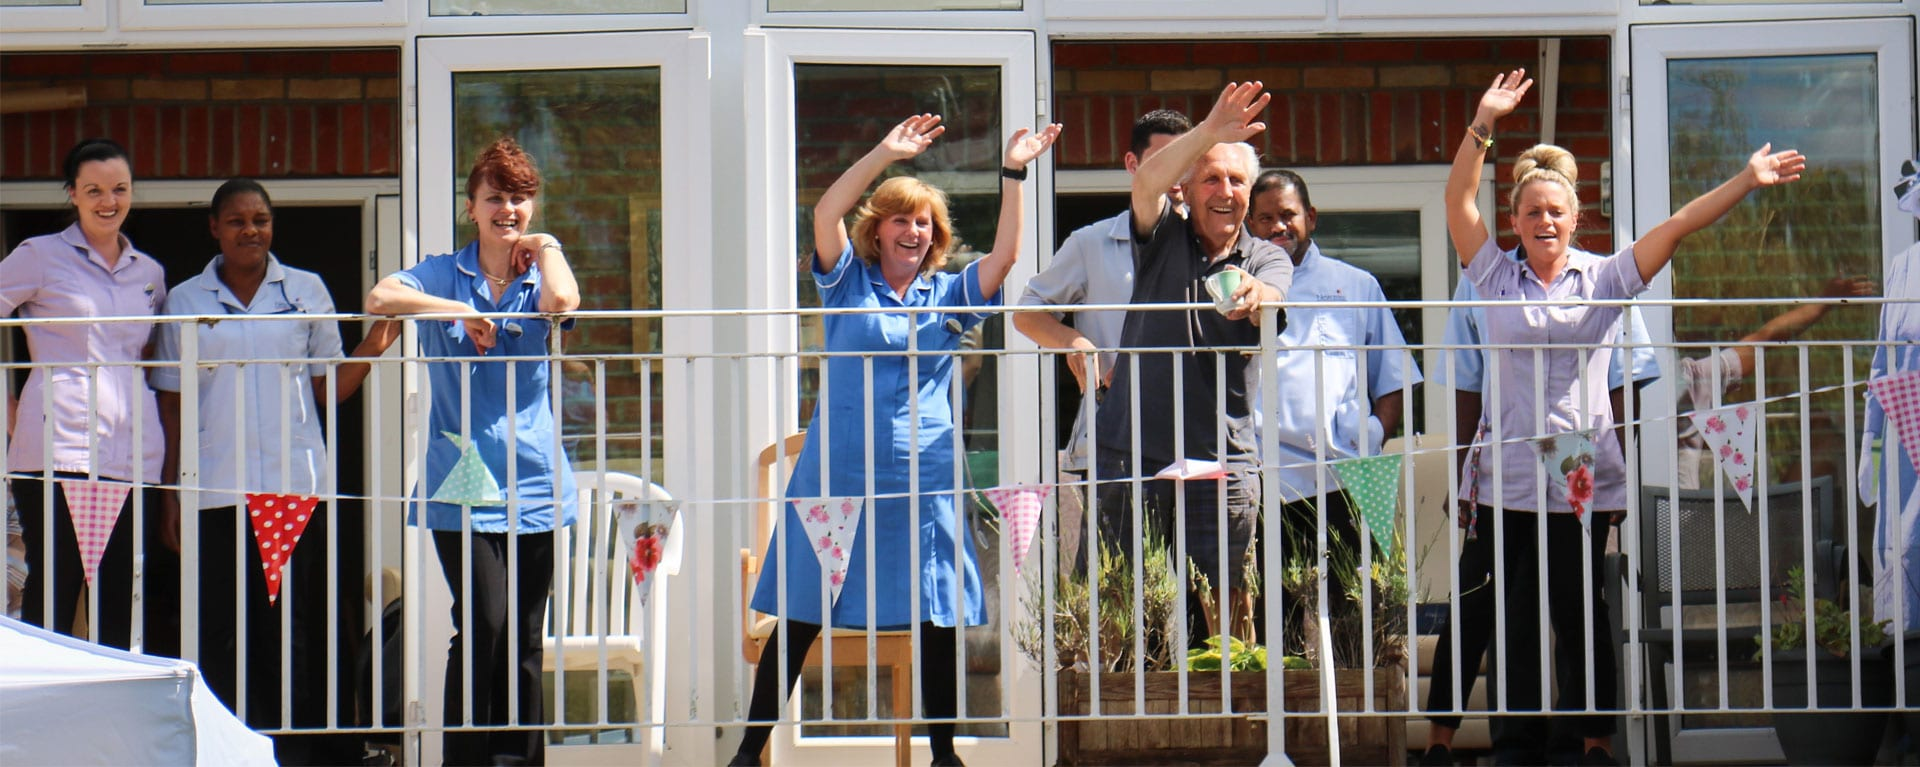 Laurel Care Home staff cheering on the balcony